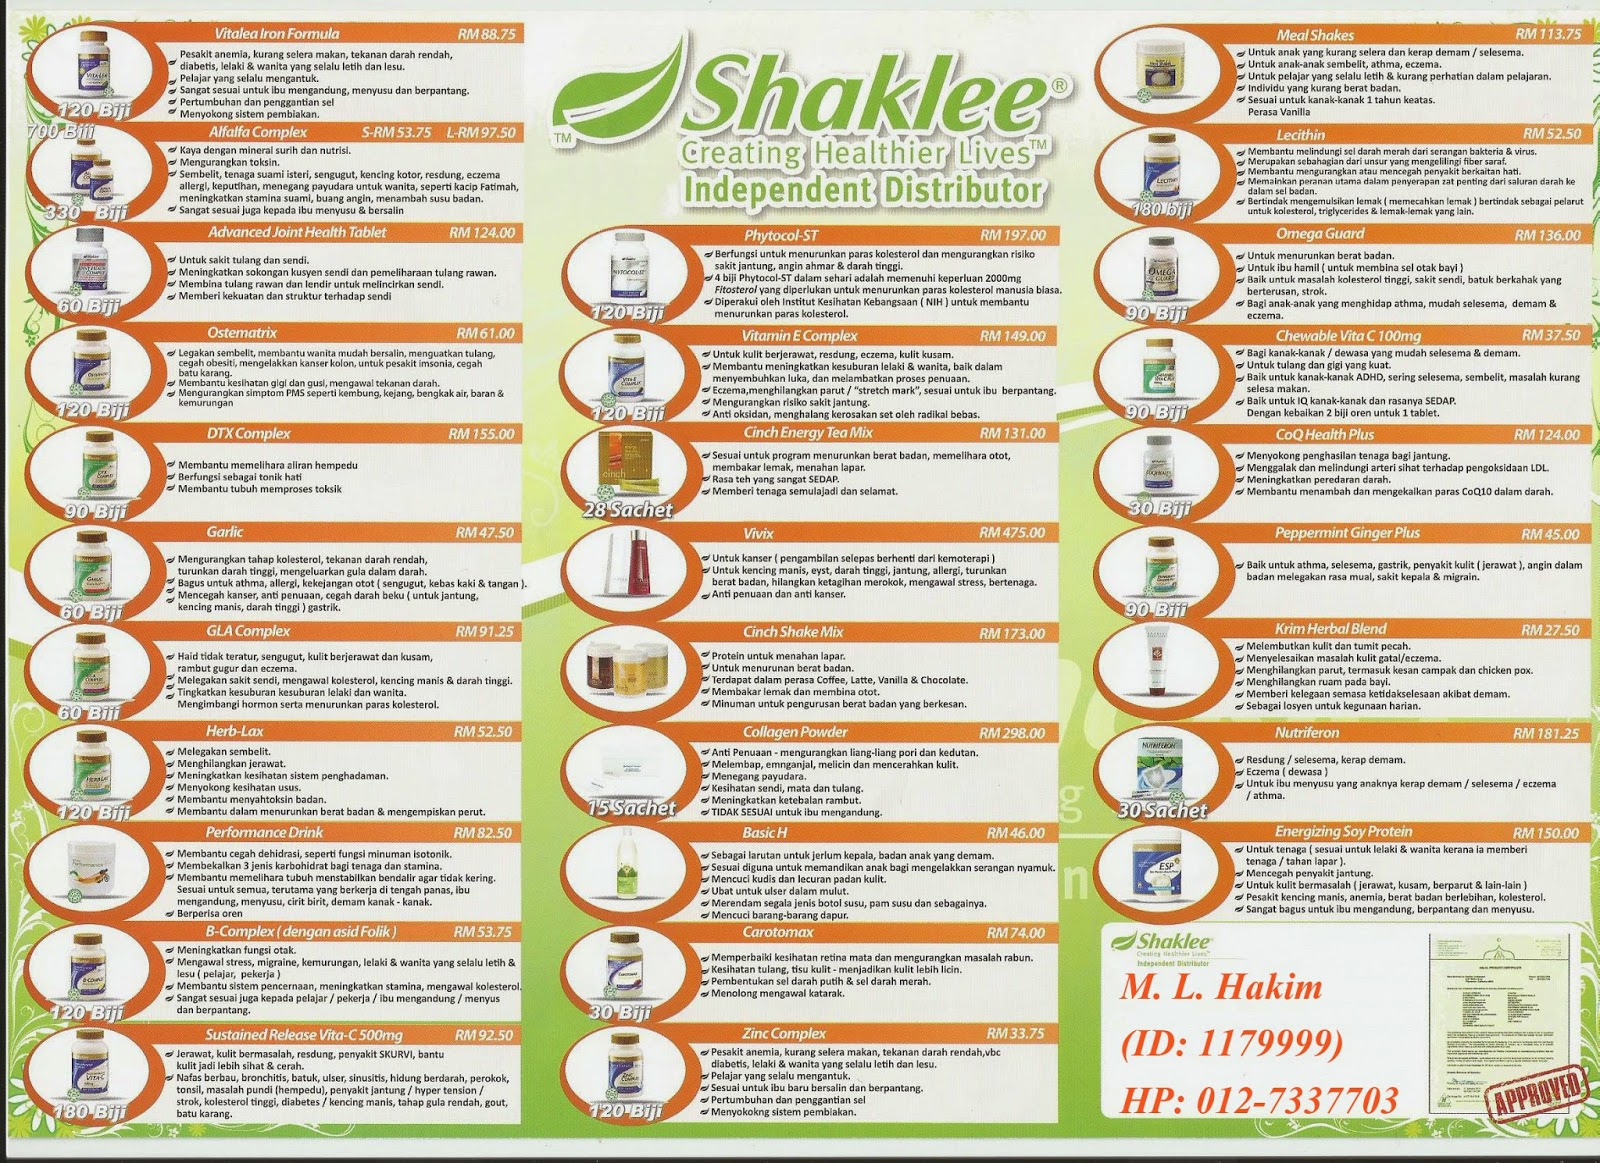 Shaklee Reviews - Right Opportunity or Big Scam? Find Out Here...